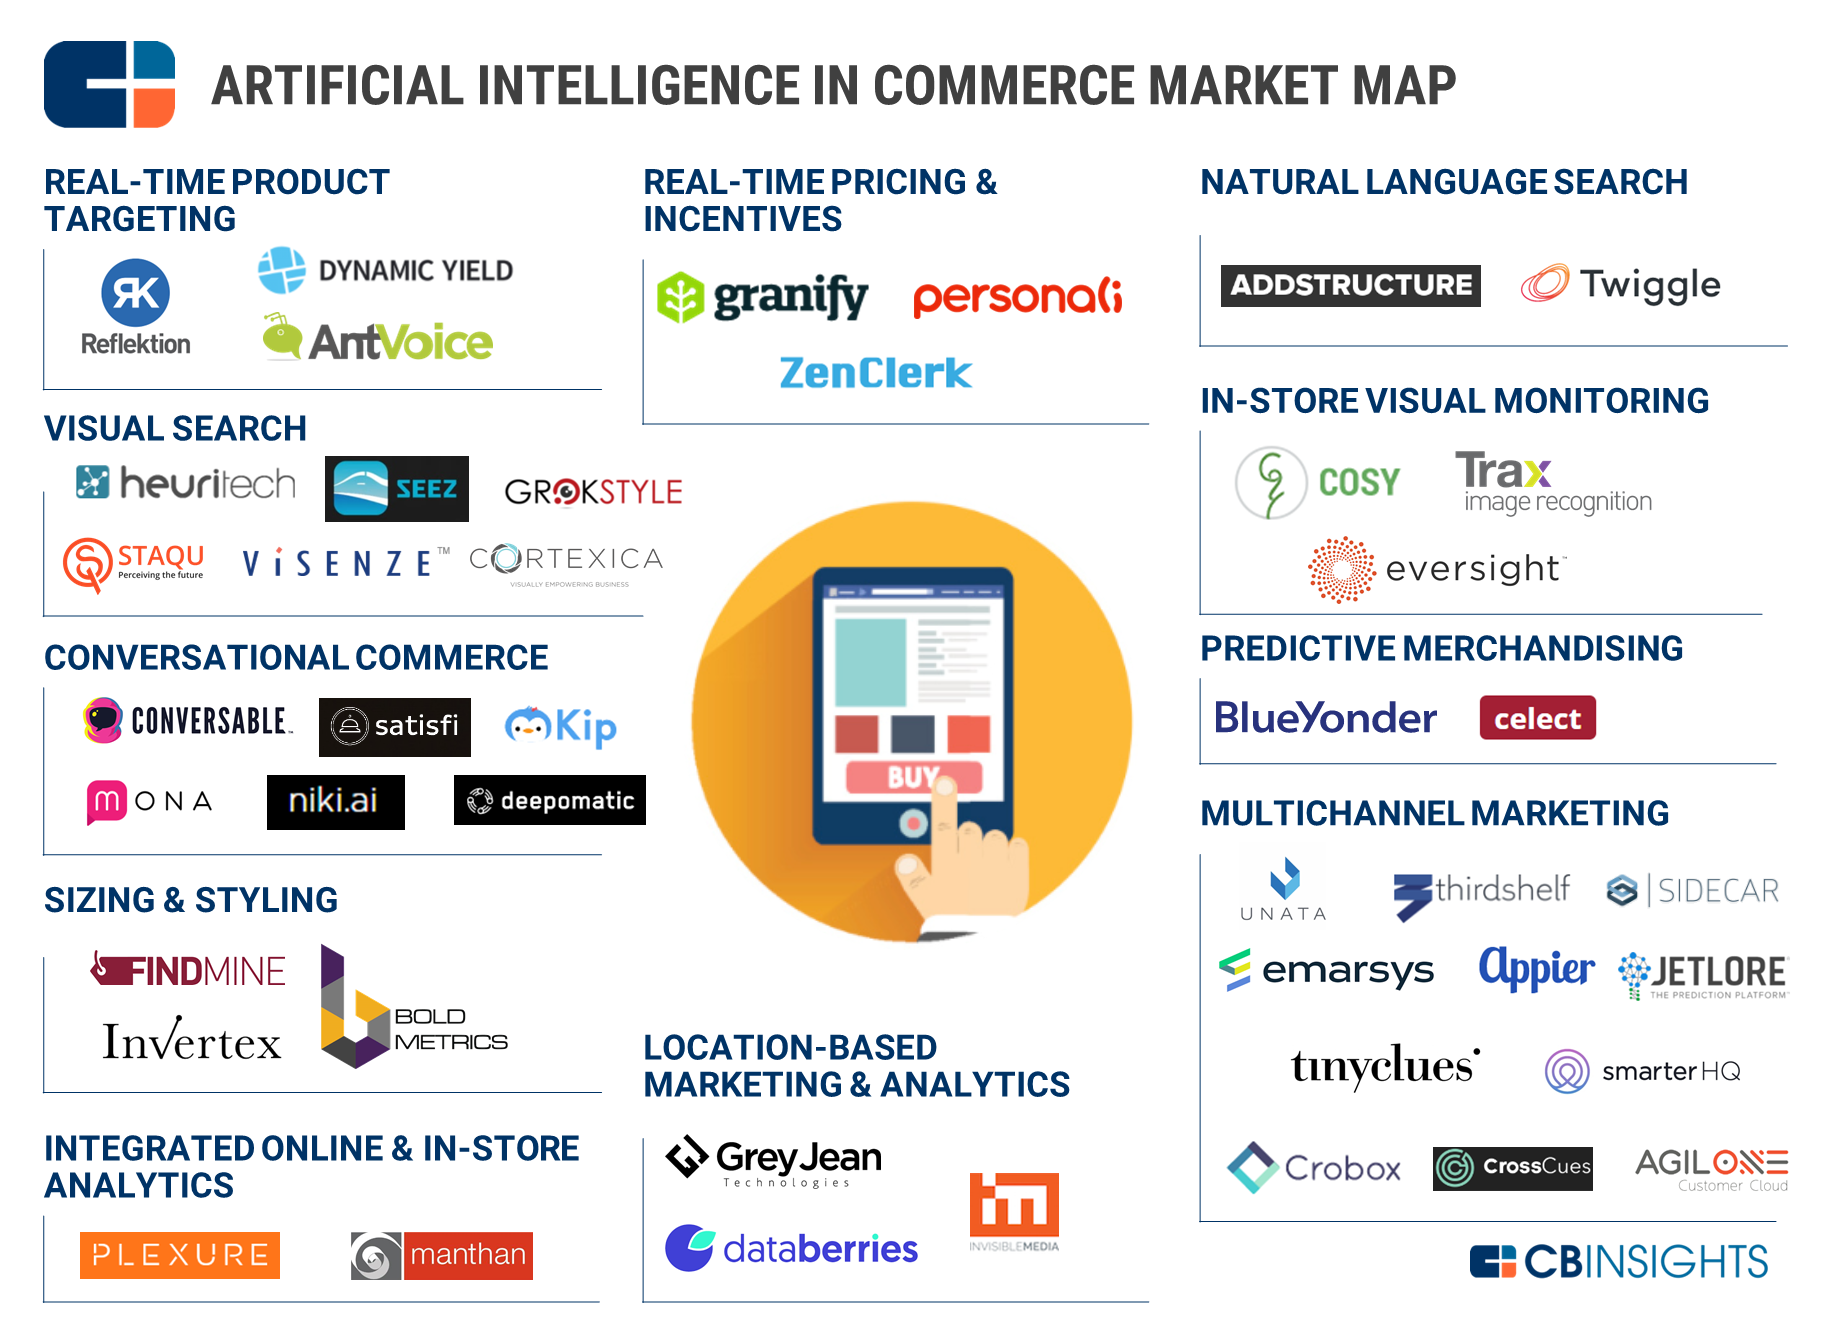 AI in Commerce Market Map